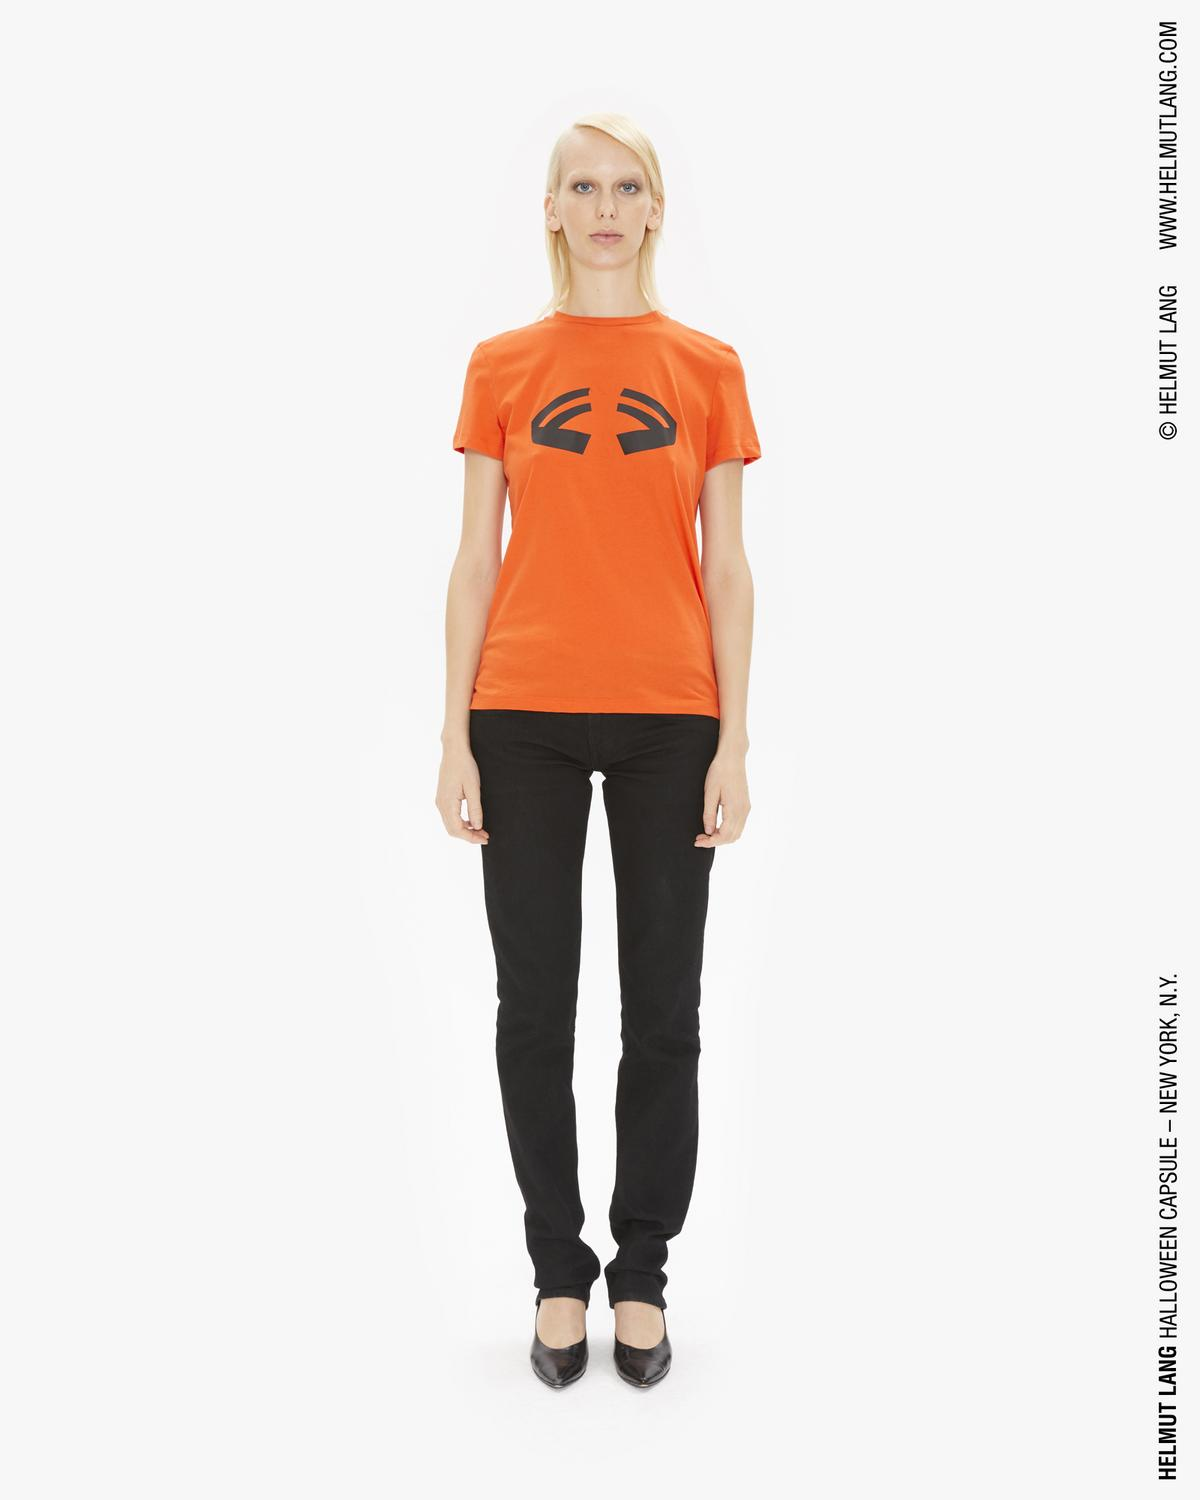 WOMEN'S PRINTED HALLOWEEN T SHIRT